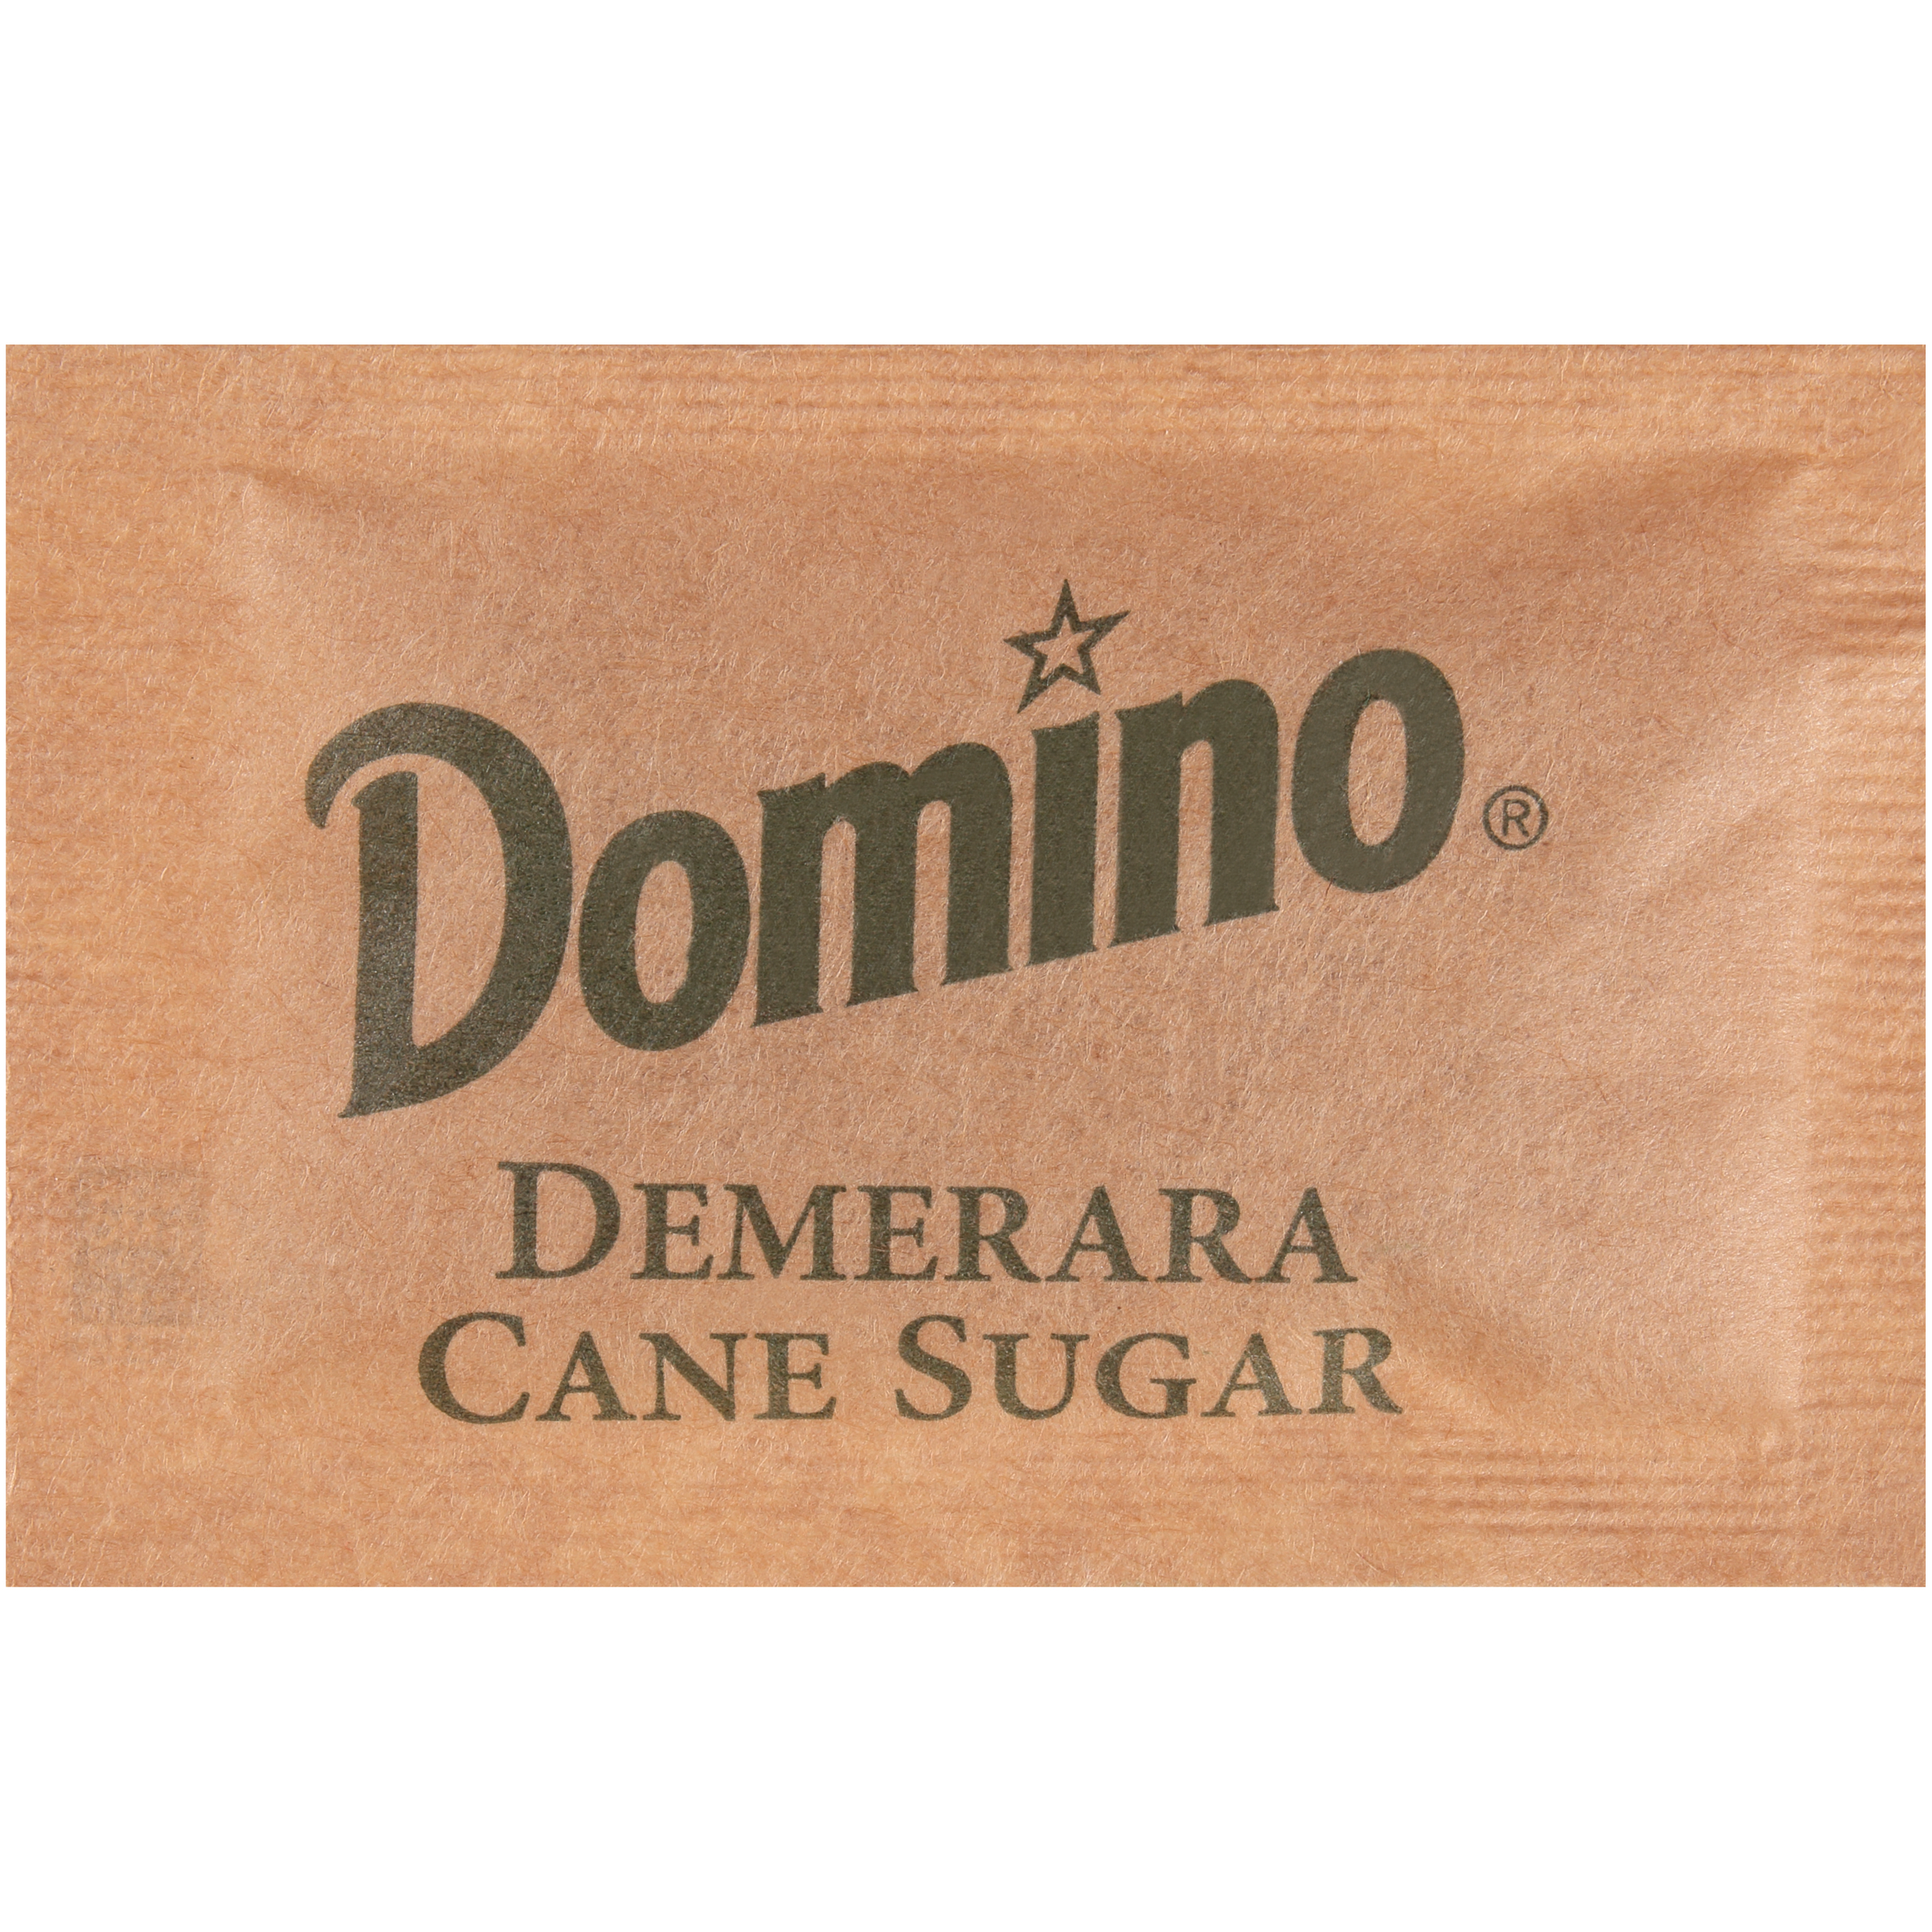 Domino® Demerara Cane Sugar Packets - 1/10 Oz, 1000 Count